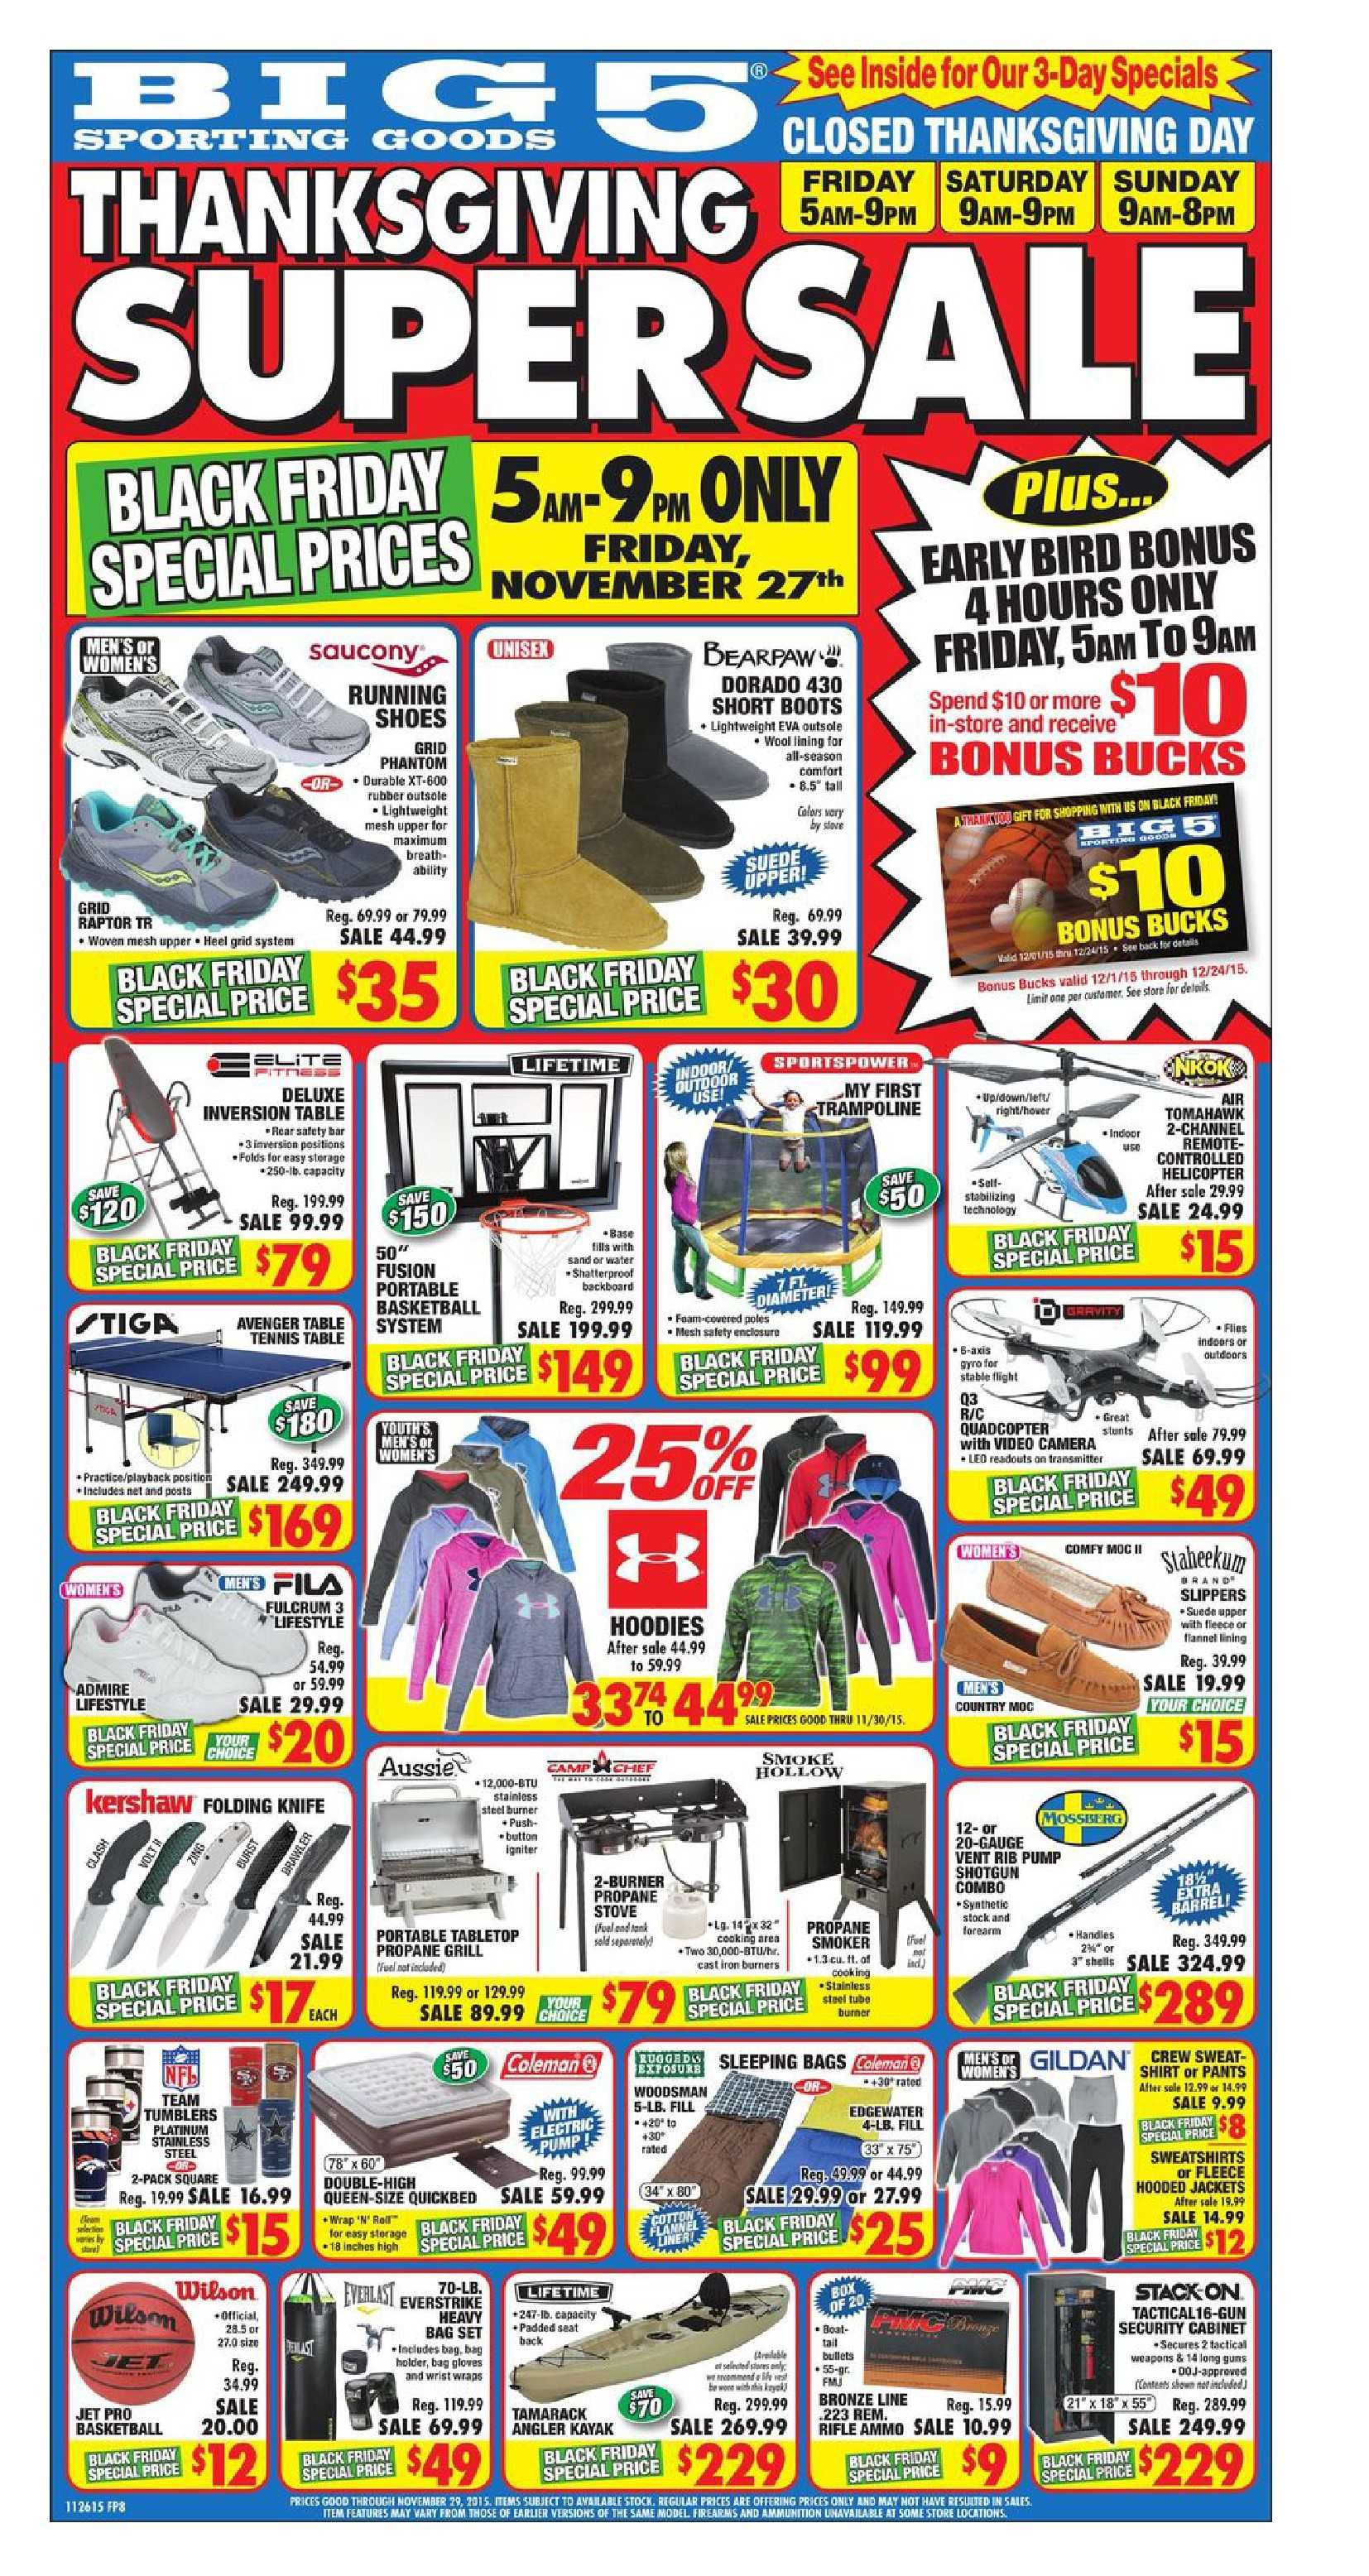 Big 5 Black Friday 2015 Weekly Ads And Circulars November 2015 Us Retailers And Groceries Posting Their Latest Offers Promo Coupons And Deals